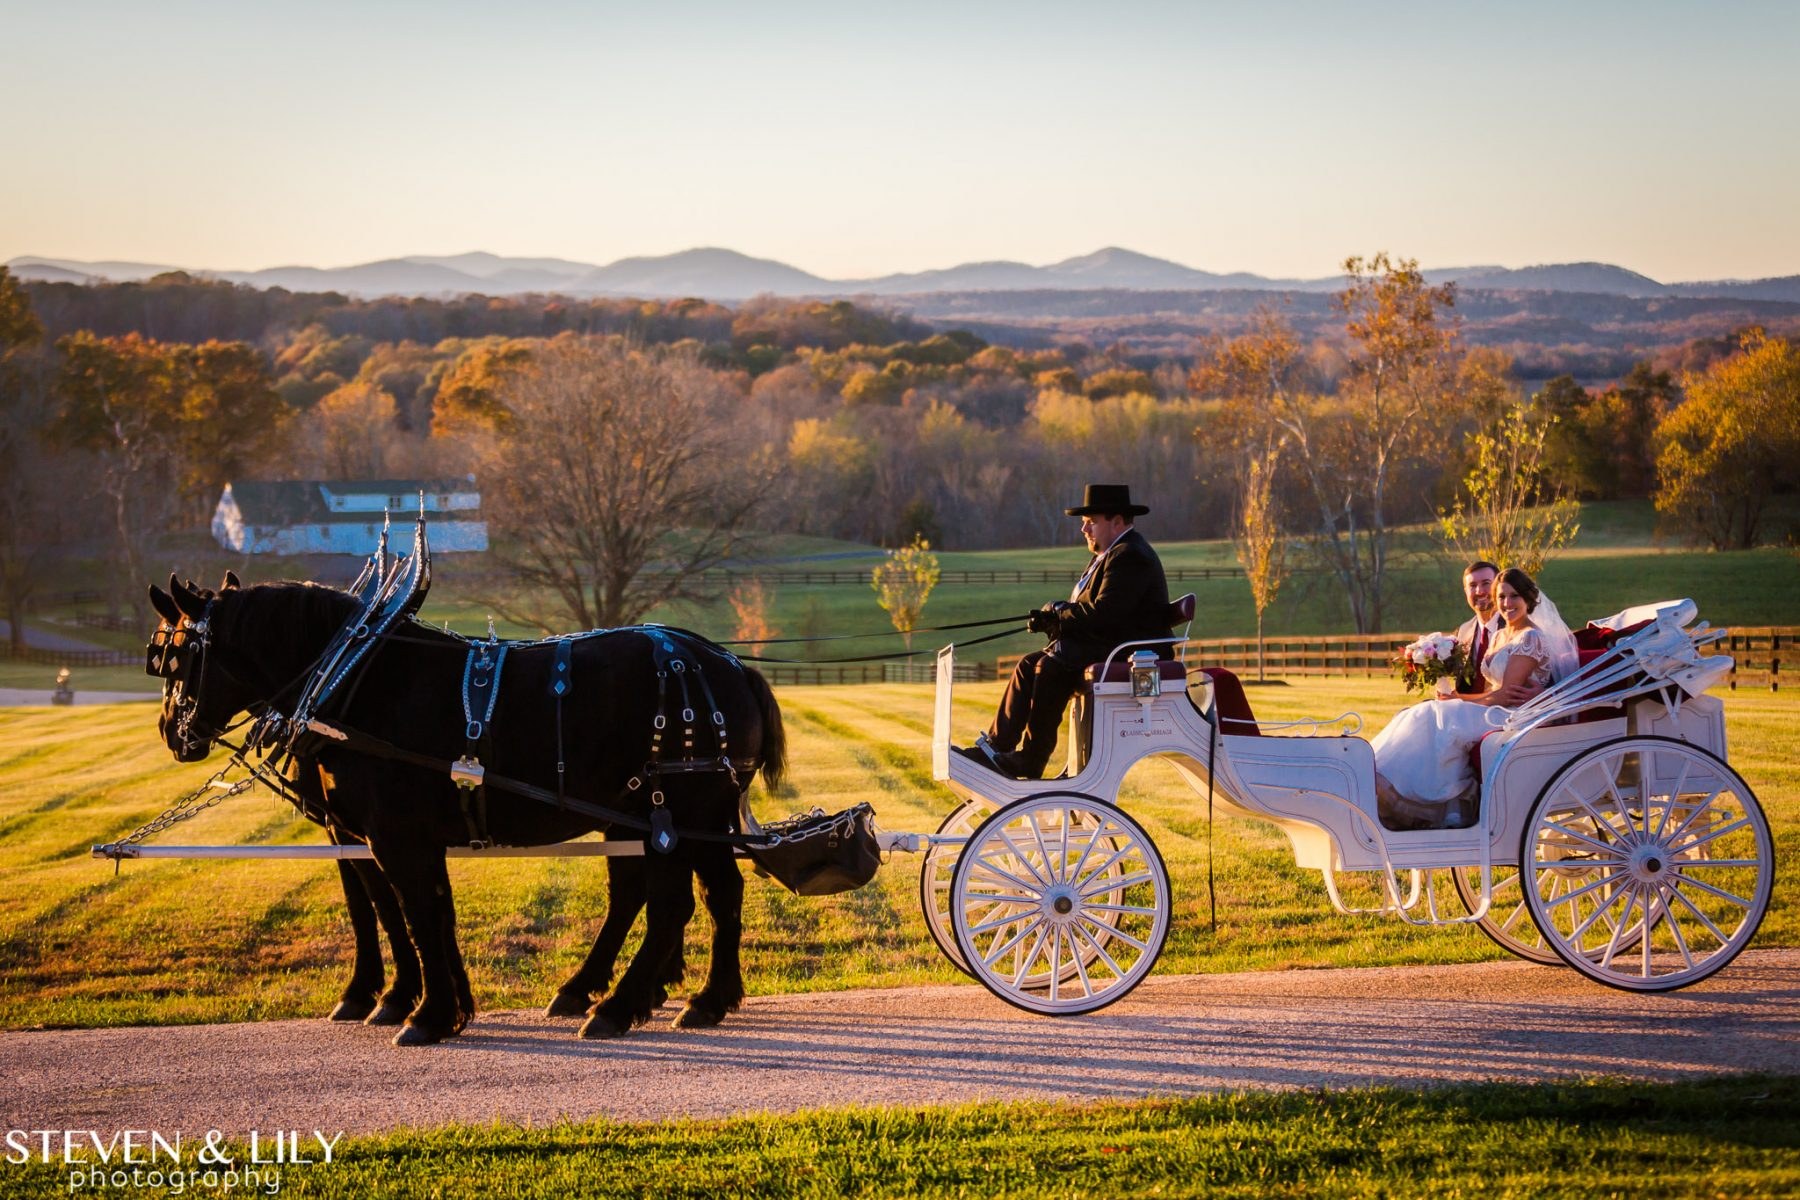 Bride and Groom in Horse and Carriage Wedding at Mount Ida Farm & Vineyard at Mount Ida Reserve. Black horses pull white carriage with mountain backdrop/